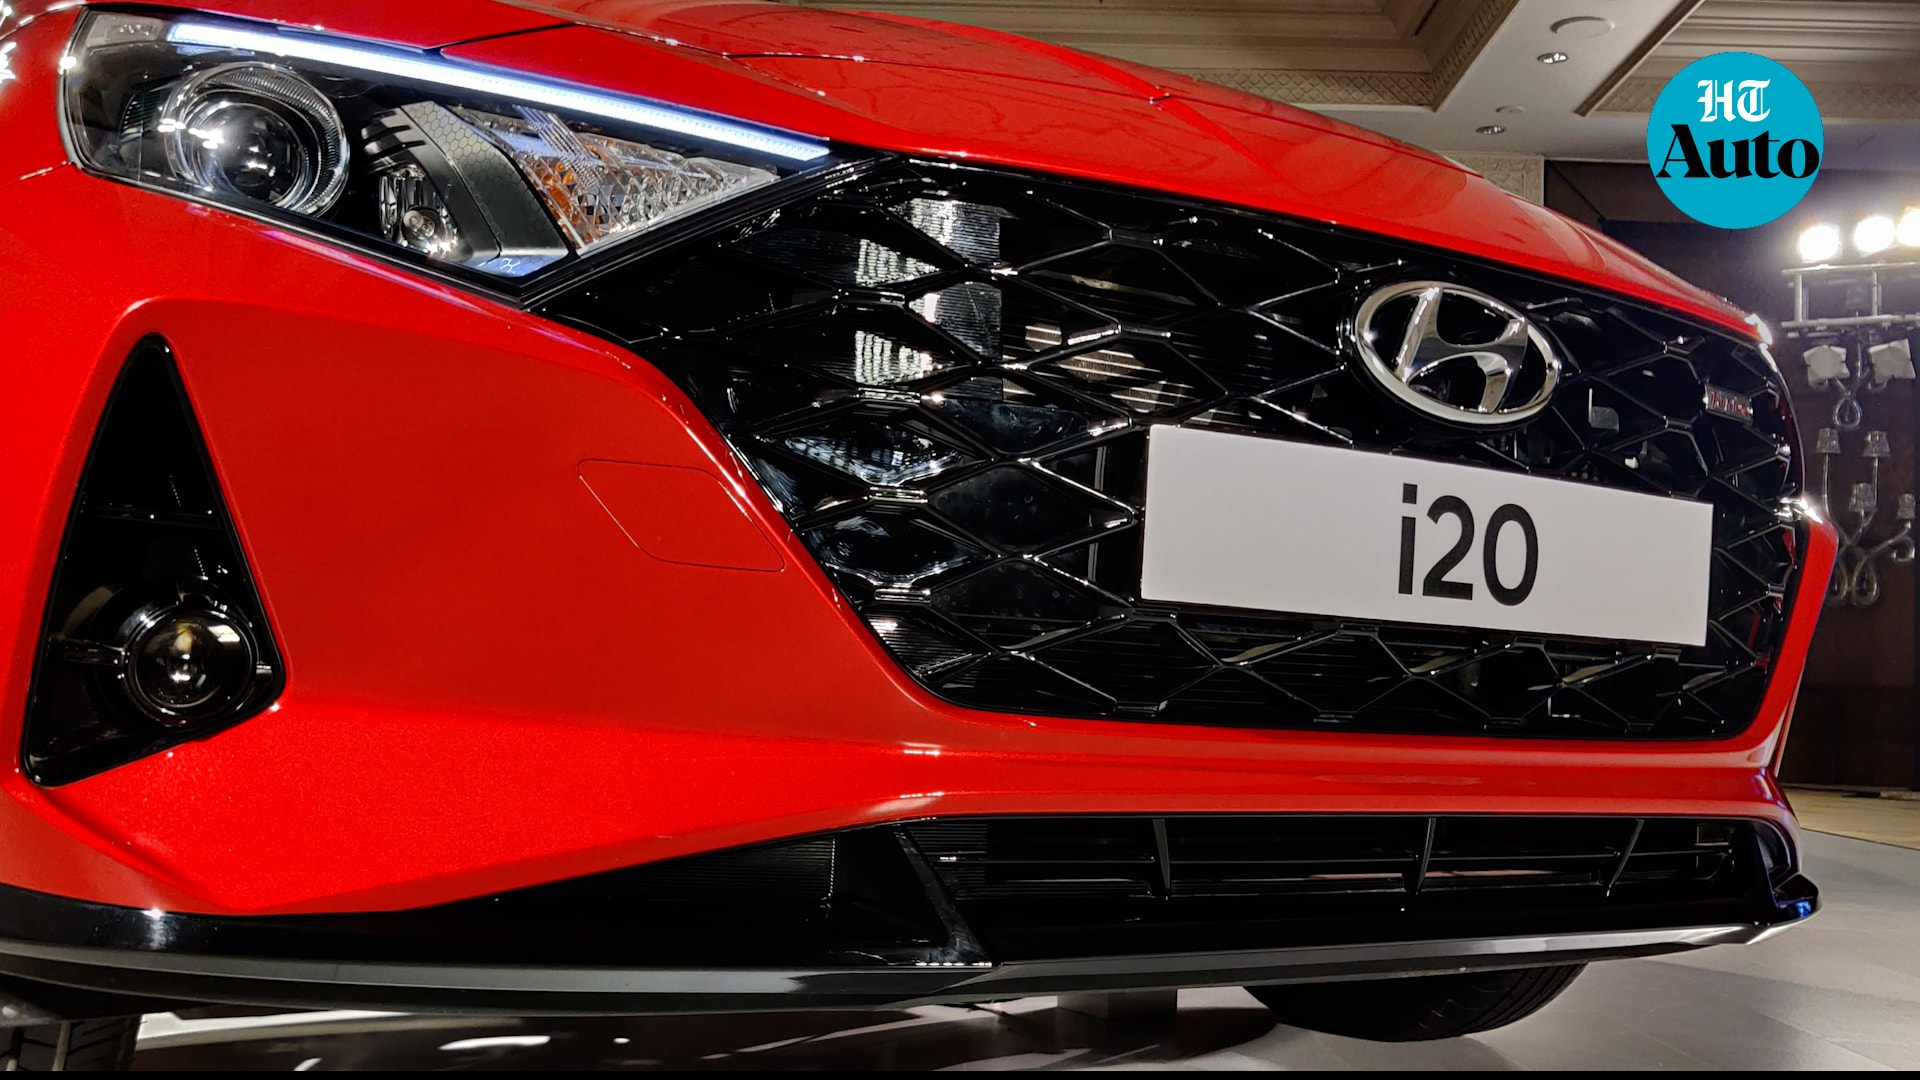 The new i20 gets a new front grille that Hyundai describes as Parametric Jewel pattern grille. It is flanked on either side by catchy LED head lamps which come with the i20 branding. Sitting under these are the projector fog lamps in a D-shaped casing.